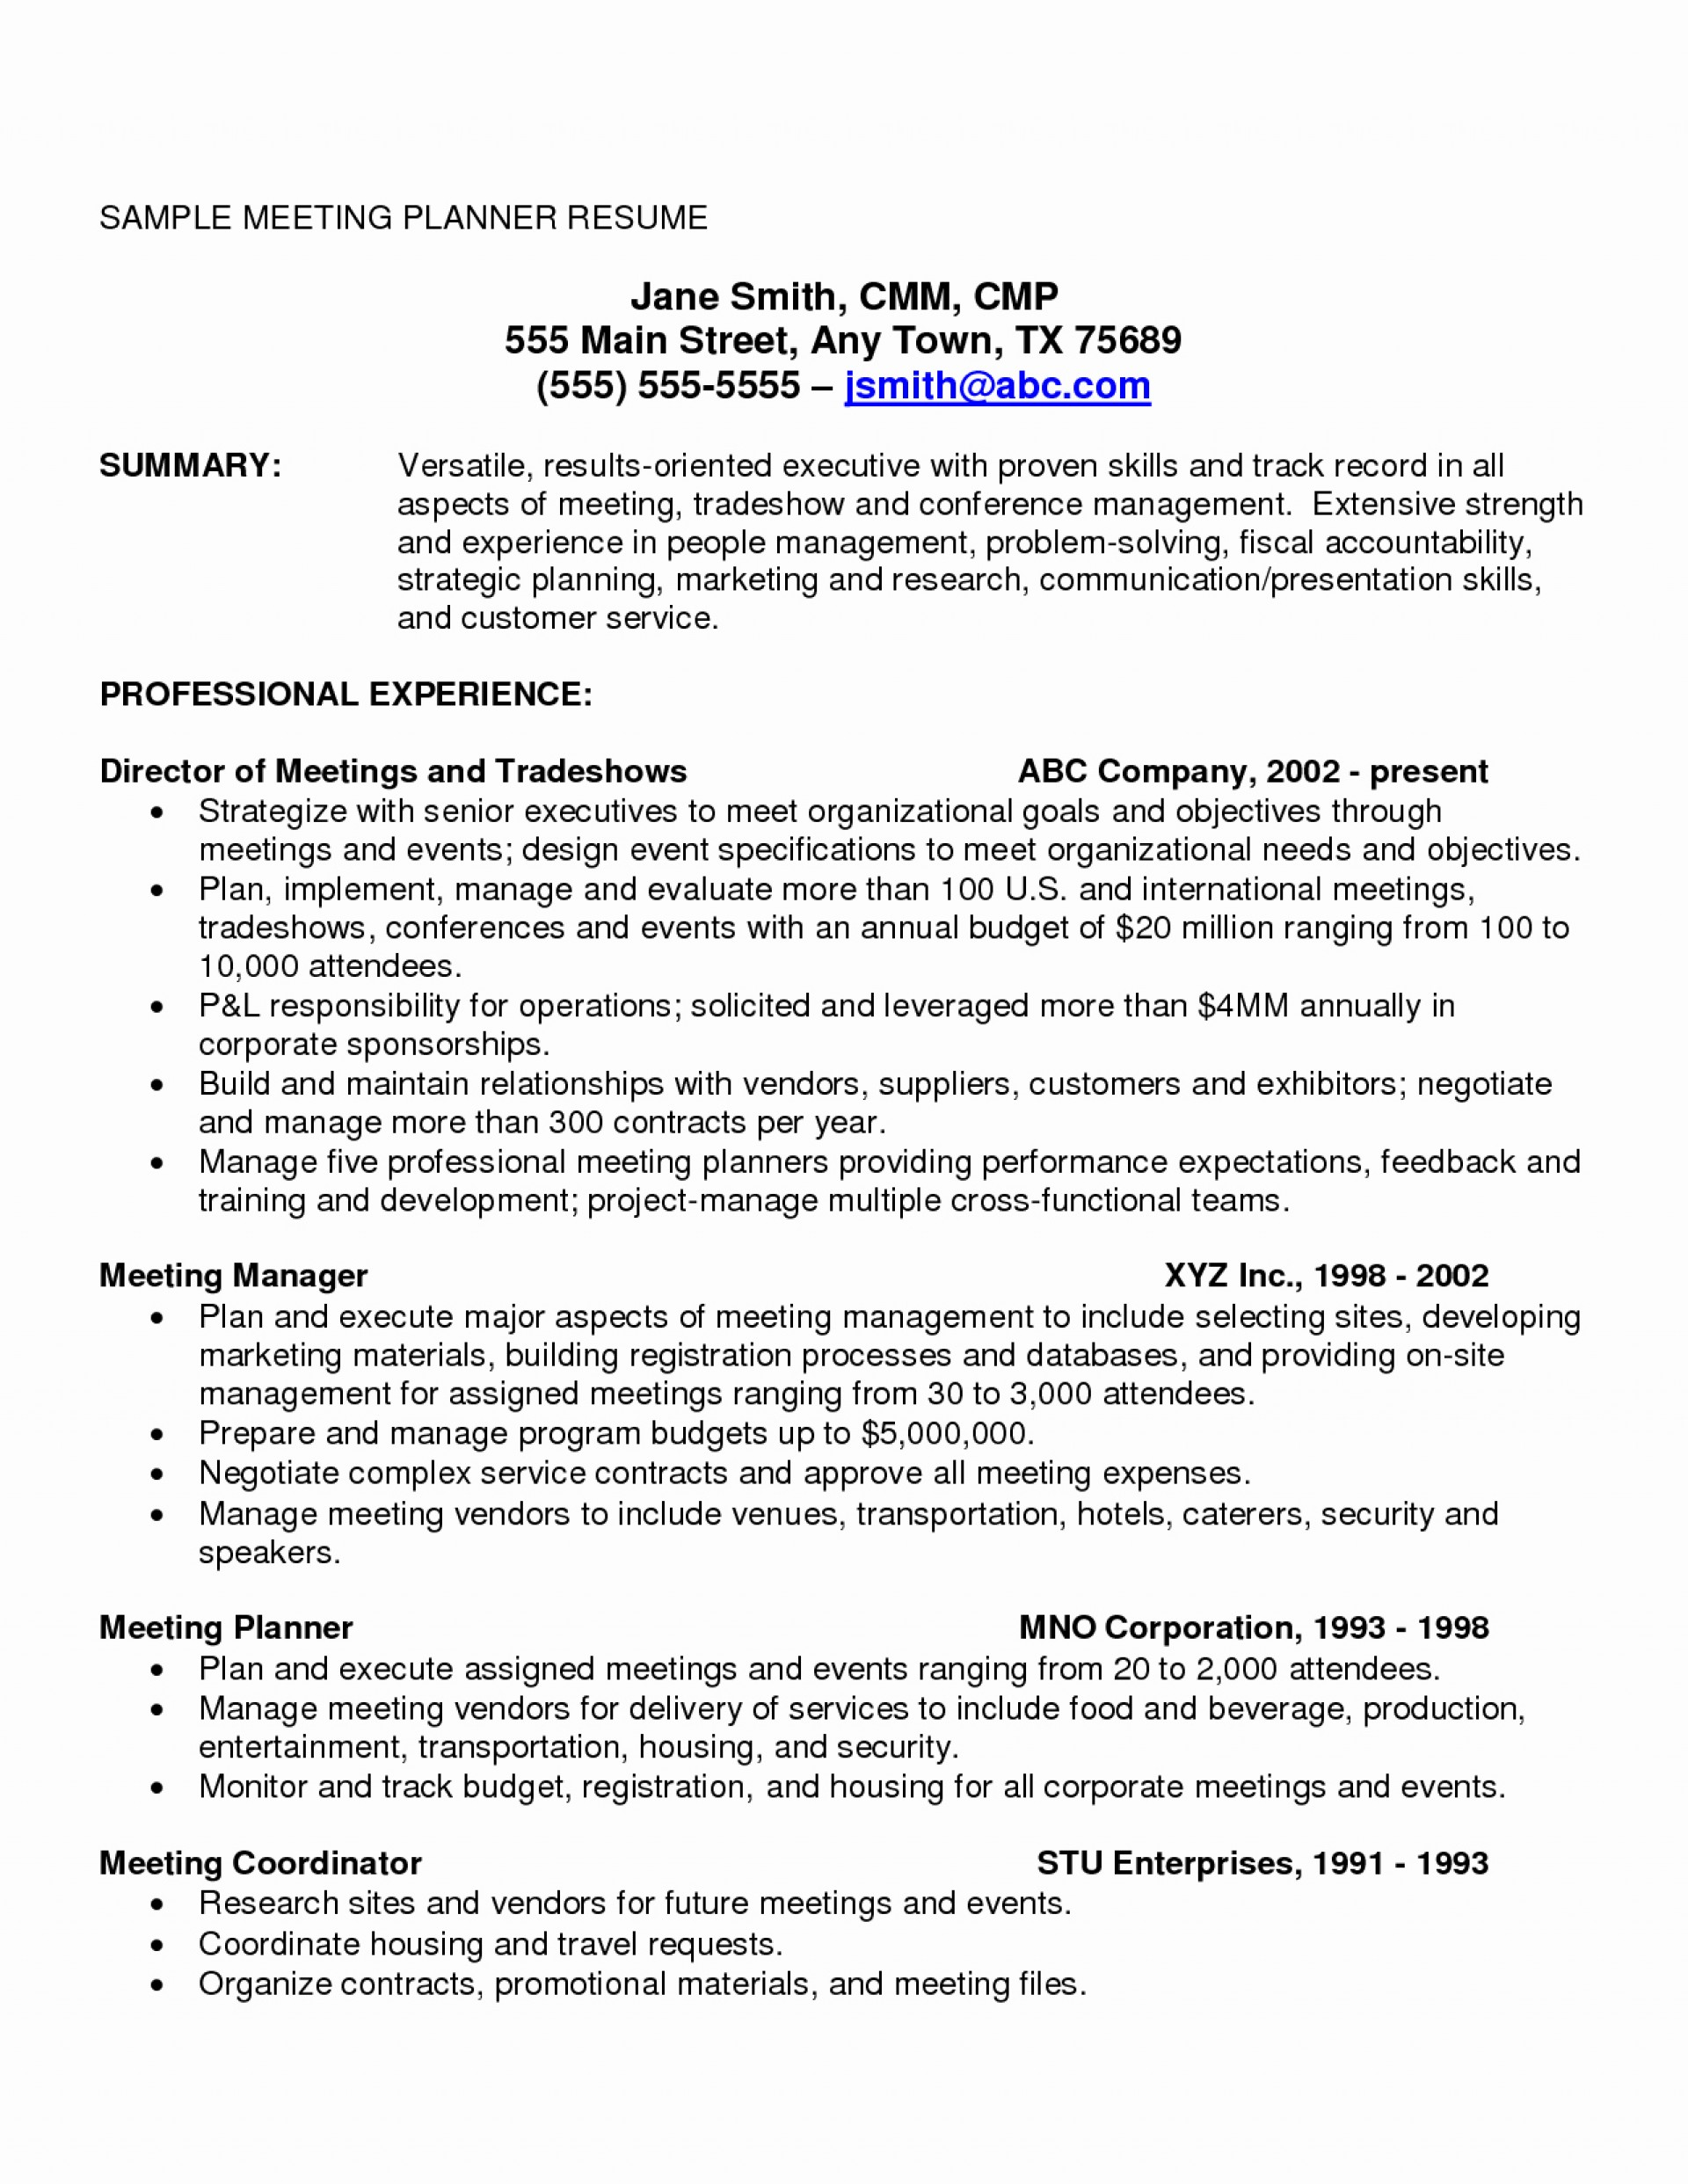 017 Event Coordinator Cover Letters Example Luxury Marketing Letter Freshsays Writers Notebook Argard Viajes Home Free Resume Creative Target Market Importance Internship Directsay Wondrous Fresh Essays Contact Customer Service Number 1920